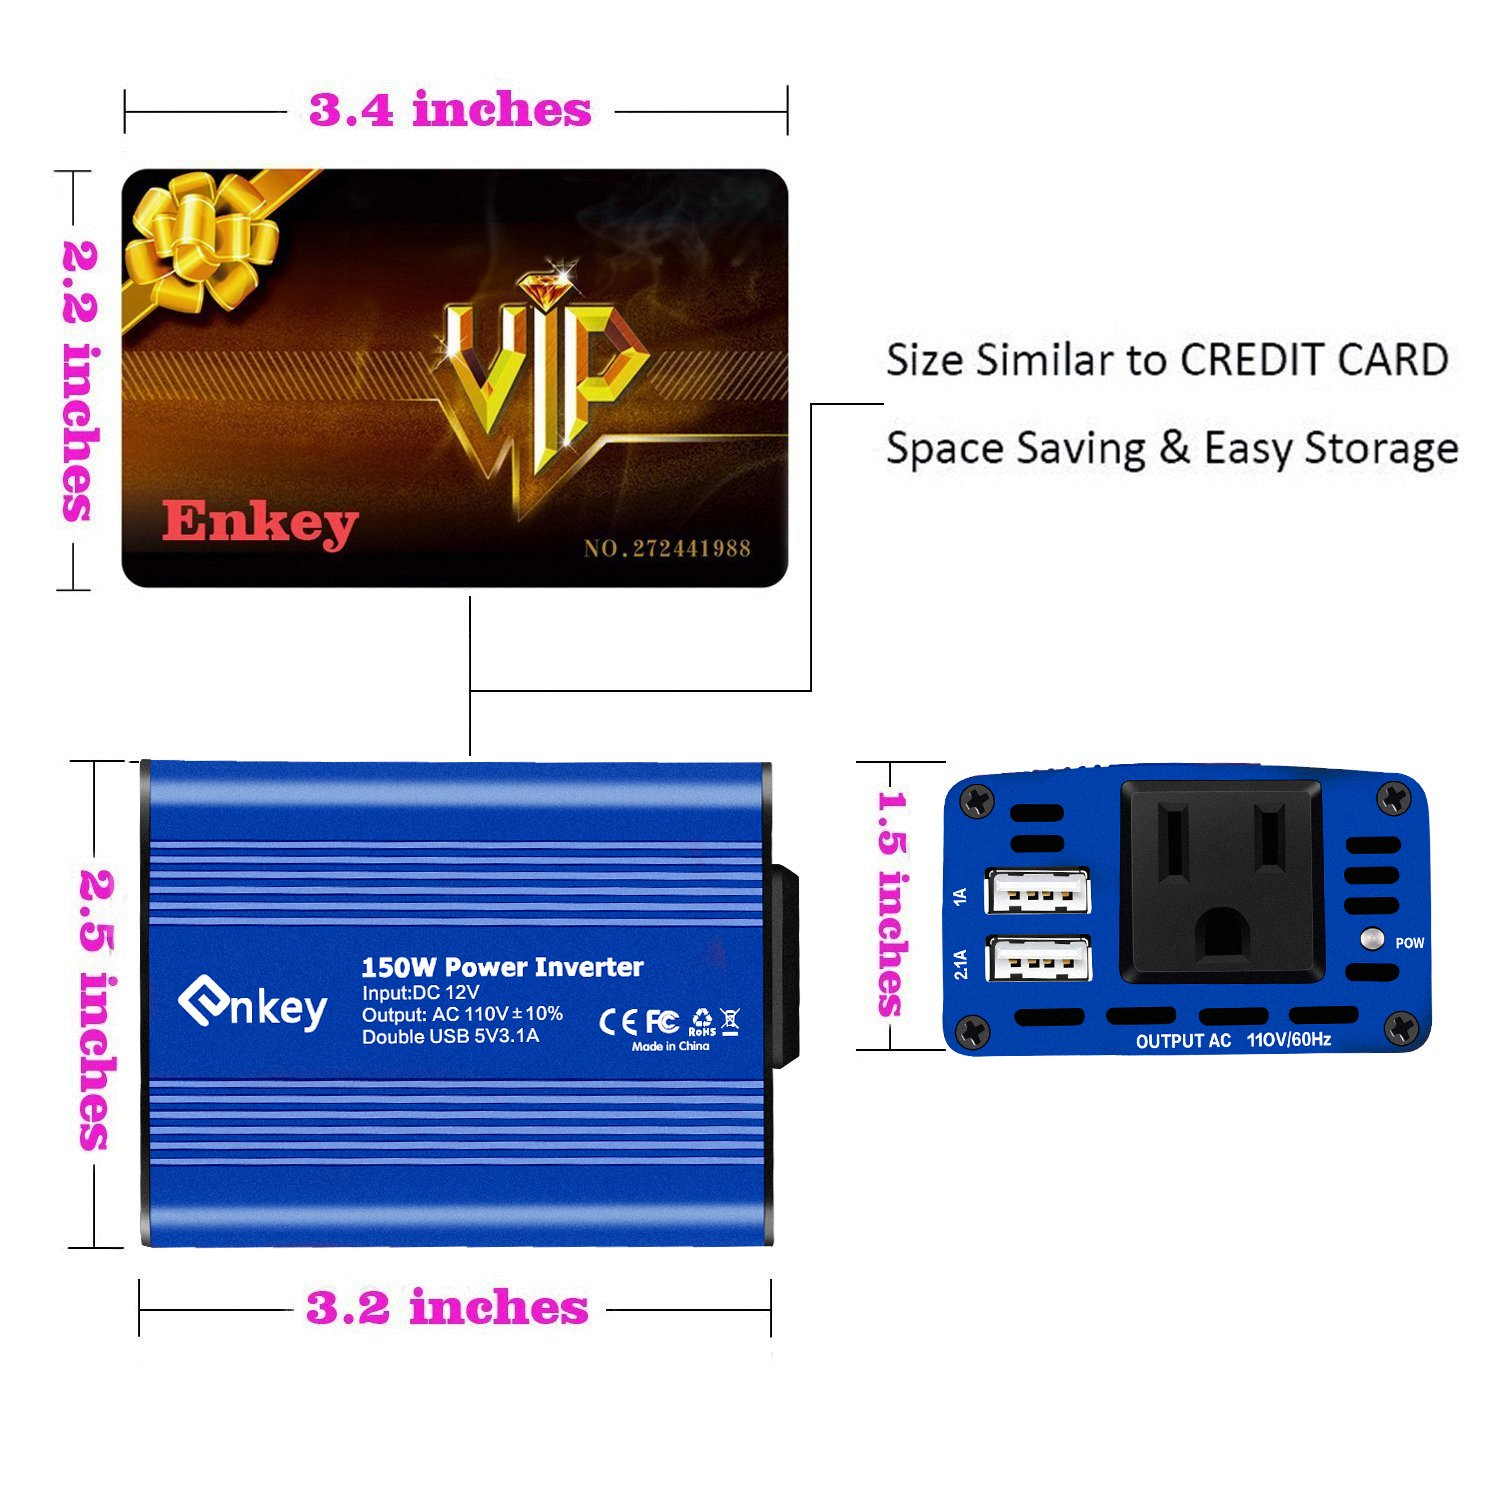 Enkey 150W Car Power Inverter DC 12V to 110V AC Converter with 3.1A Dual USB Charger - Blue by Enkey (Image #4)